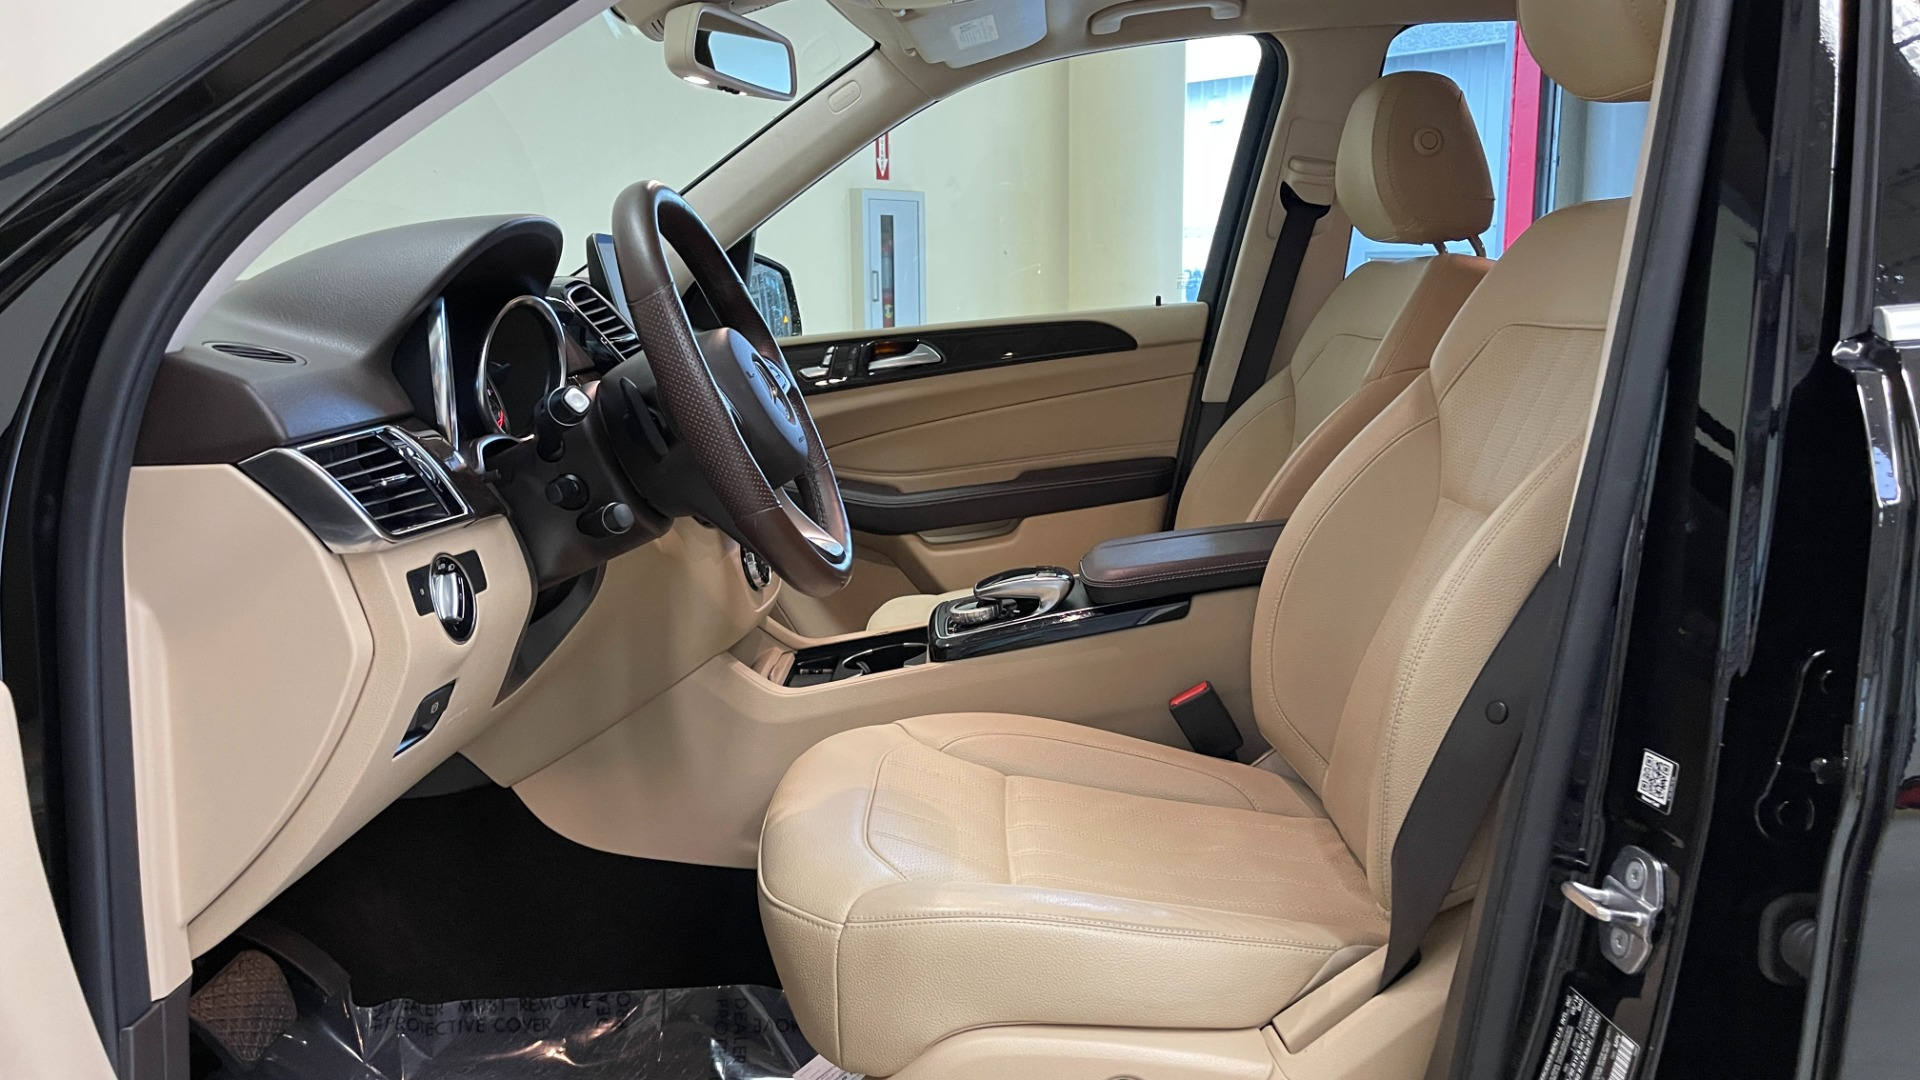 Used 2018 Mercedes-Benz GLE 350 4MATIC PREMIUM / NAV / PARK PILOT / BSA / H/K SND / SURROUND VIEW for sale $40,995 at Formula Imports in Charlotte NC 28227 27